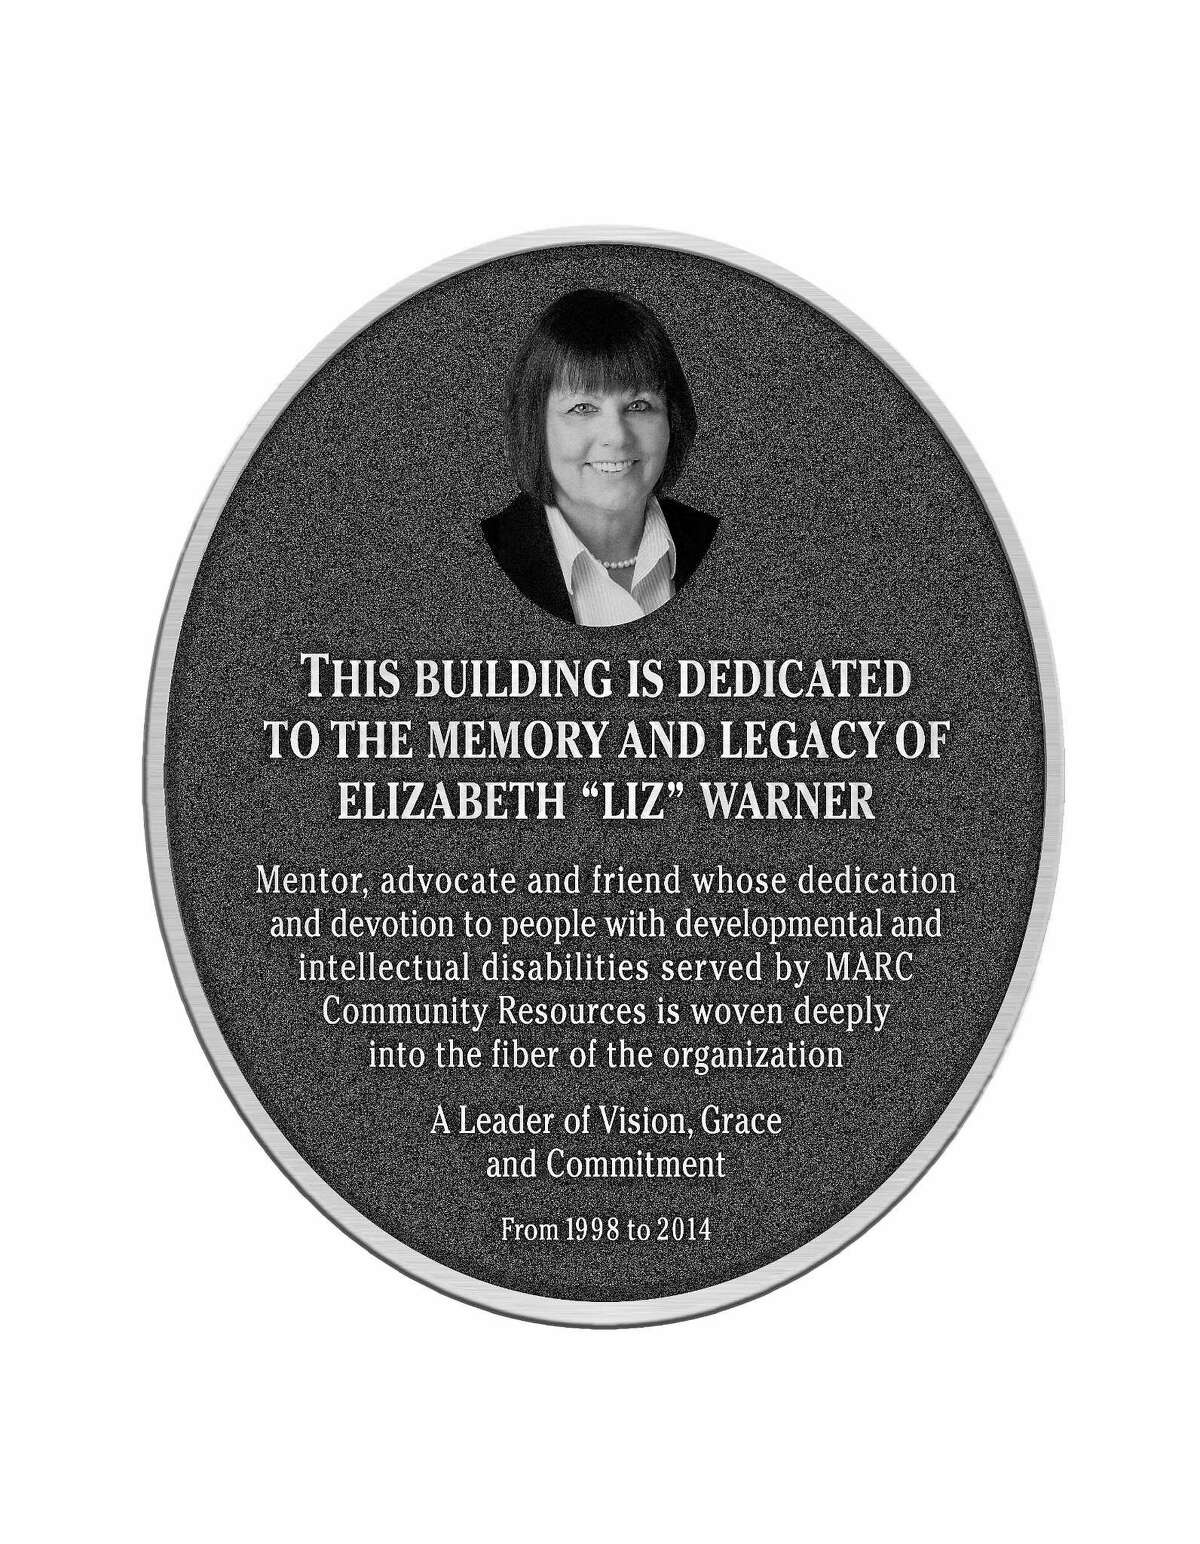 Liz Warner, president and chief executive officer of MARC Community Resources in Middletown, served the organization for more than 26 years before her death late last year.